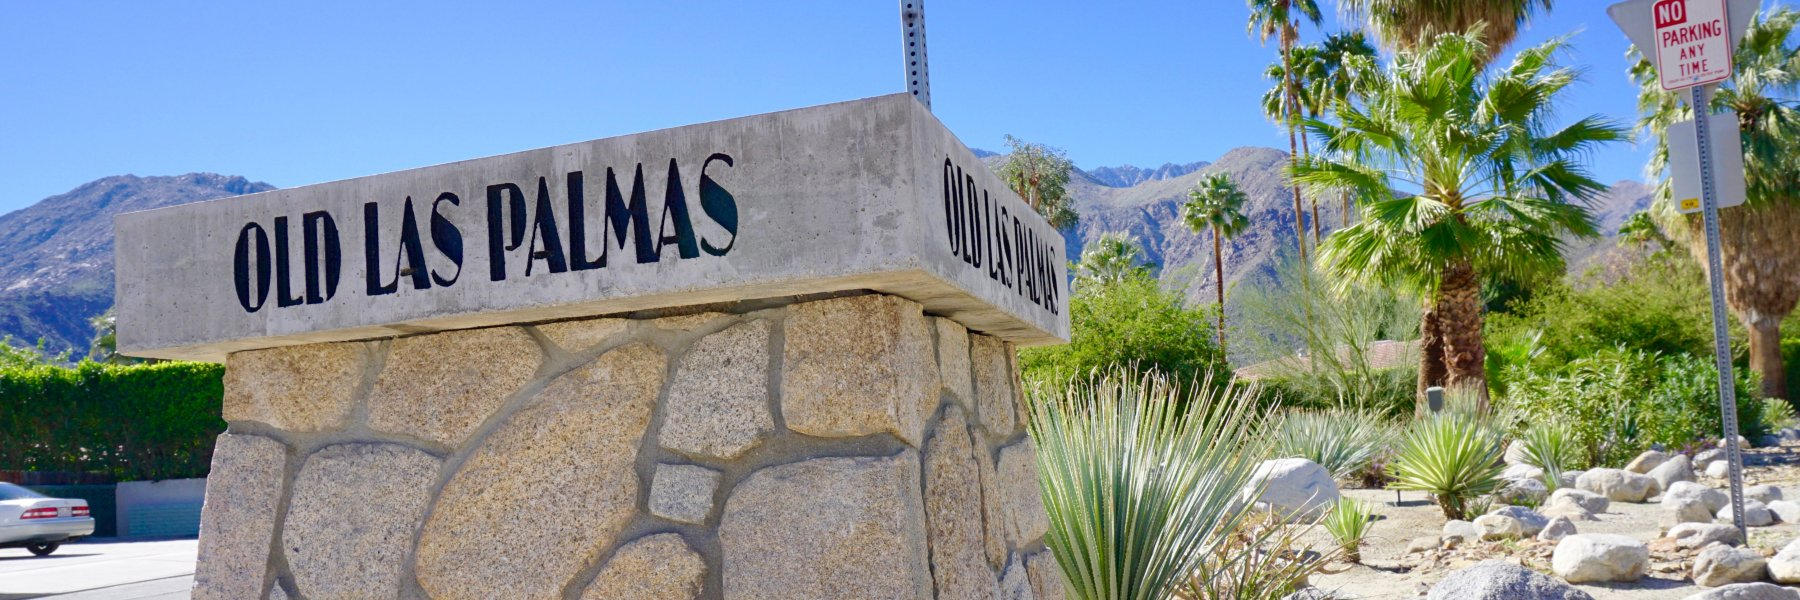 Old Las Palmas is a community of homes in Palm Springs California